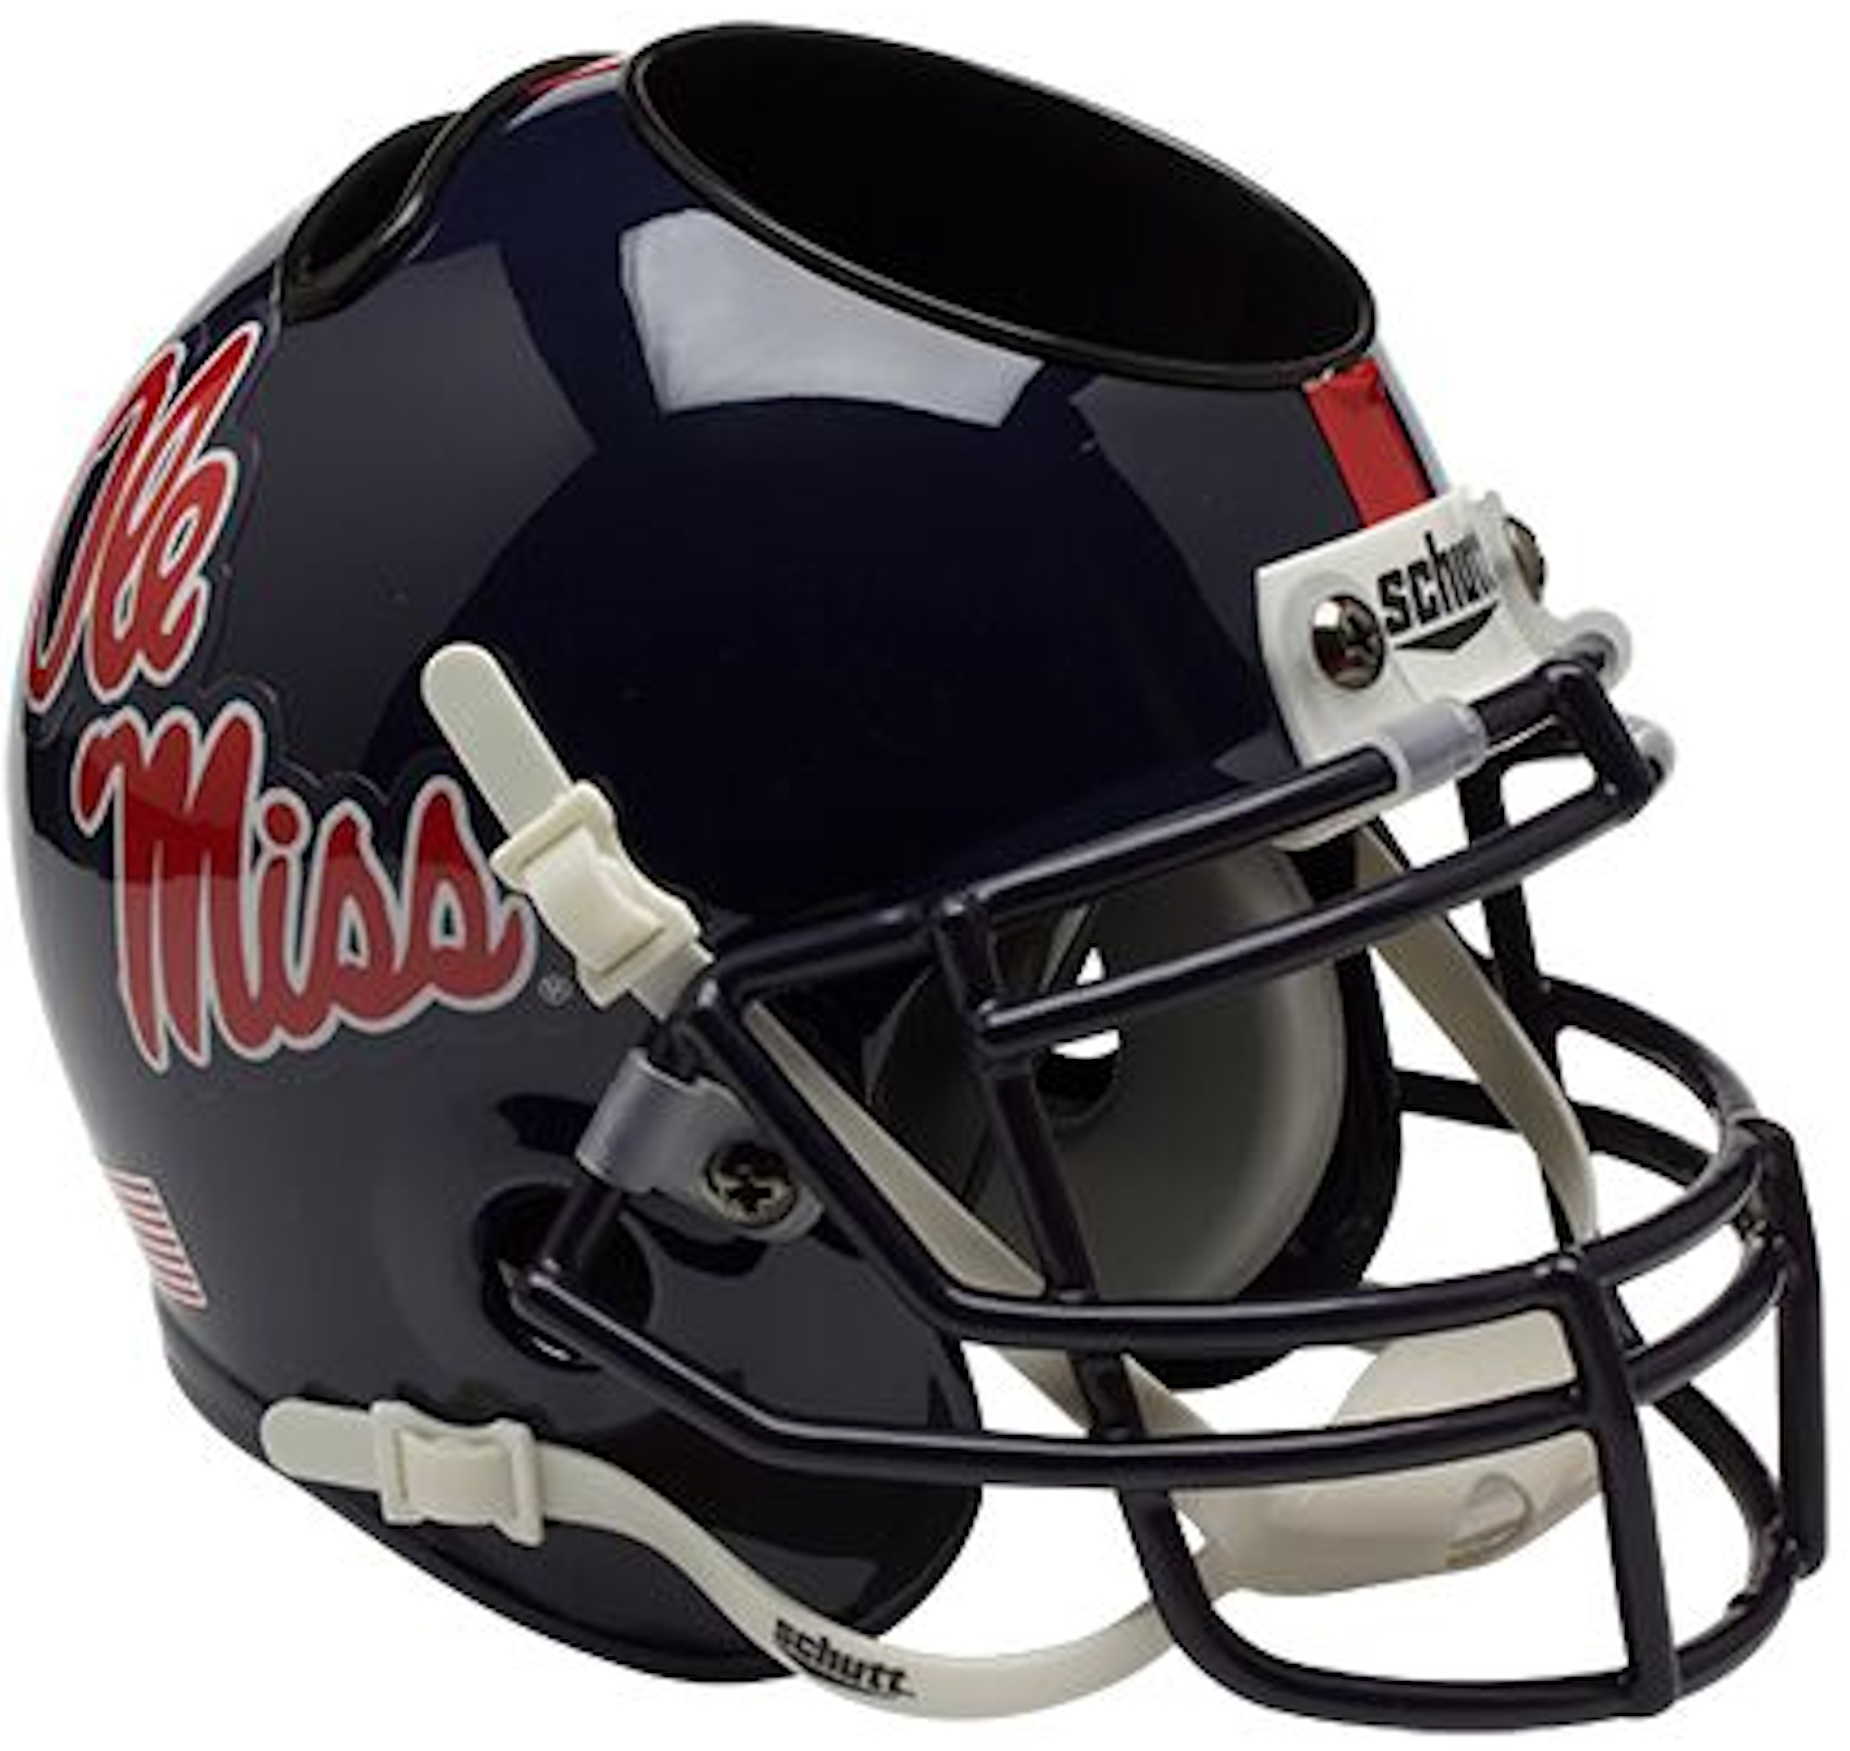 Mississippi (Ole Miss) Rebels Miniature Football Helmet Desk Caddy